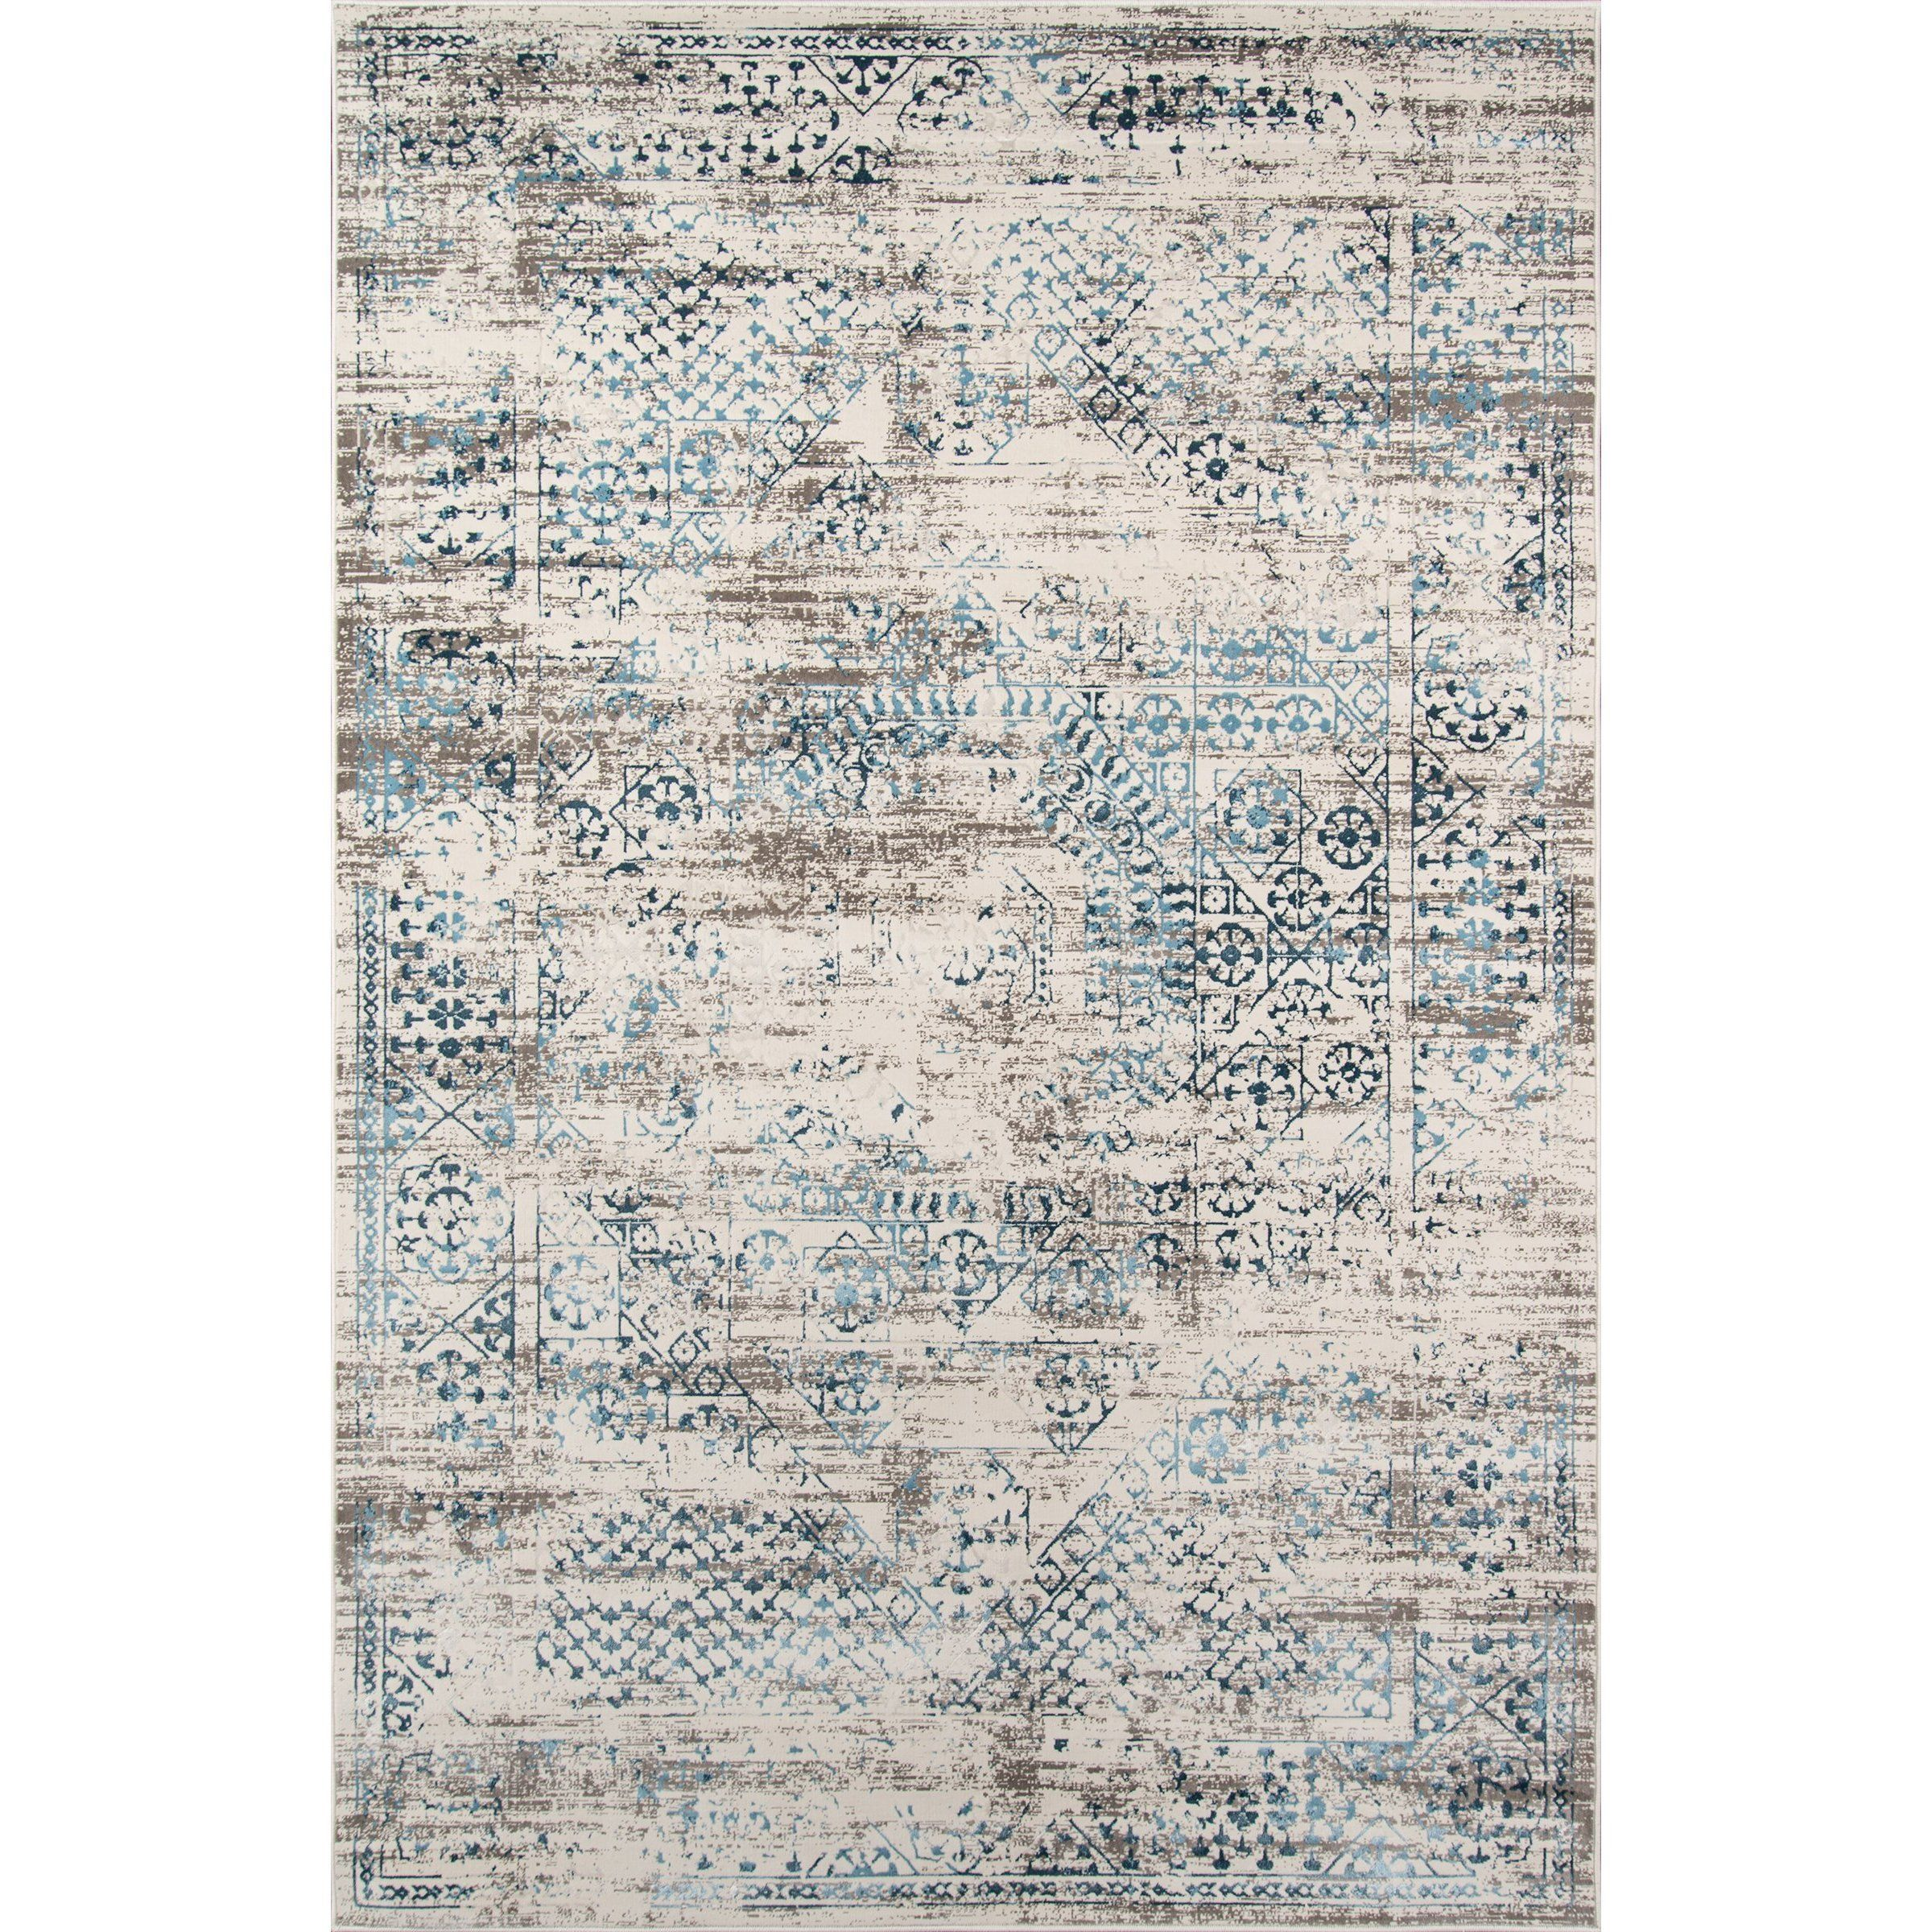 rug grey fringe nuloom flatweave x handmade garden textured stripes home product cotton